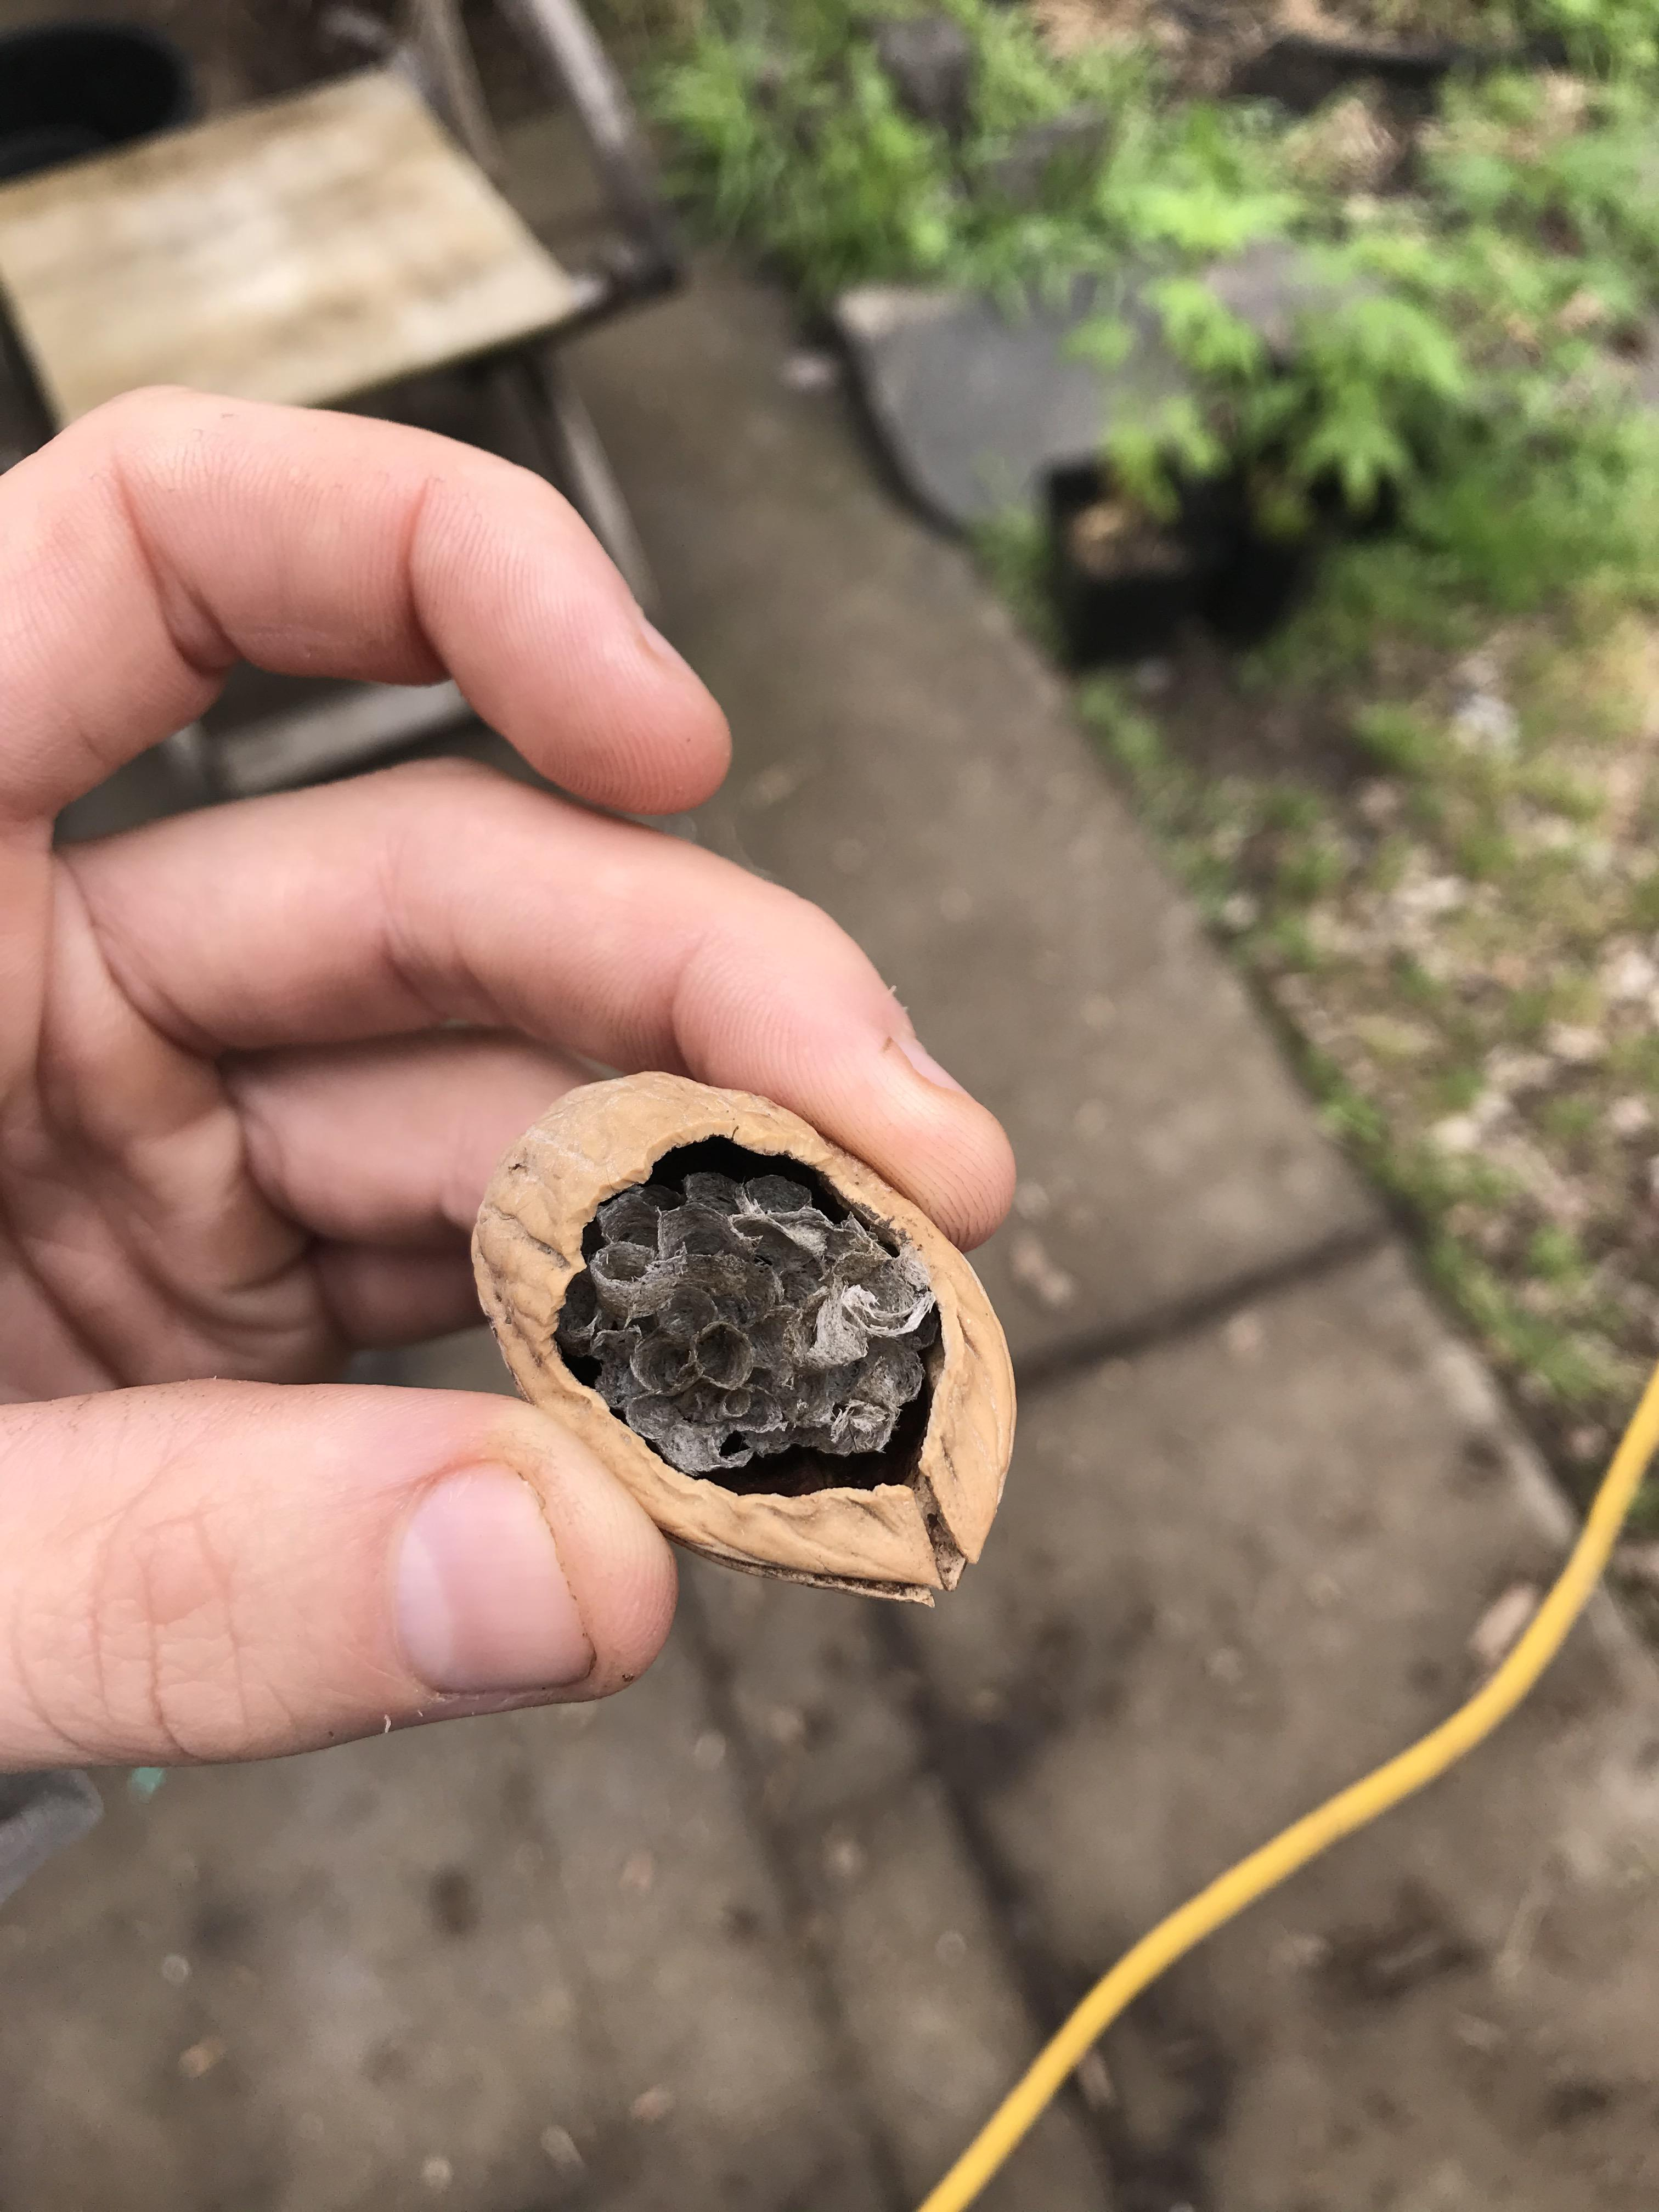 The wasp nest, in a nutshell